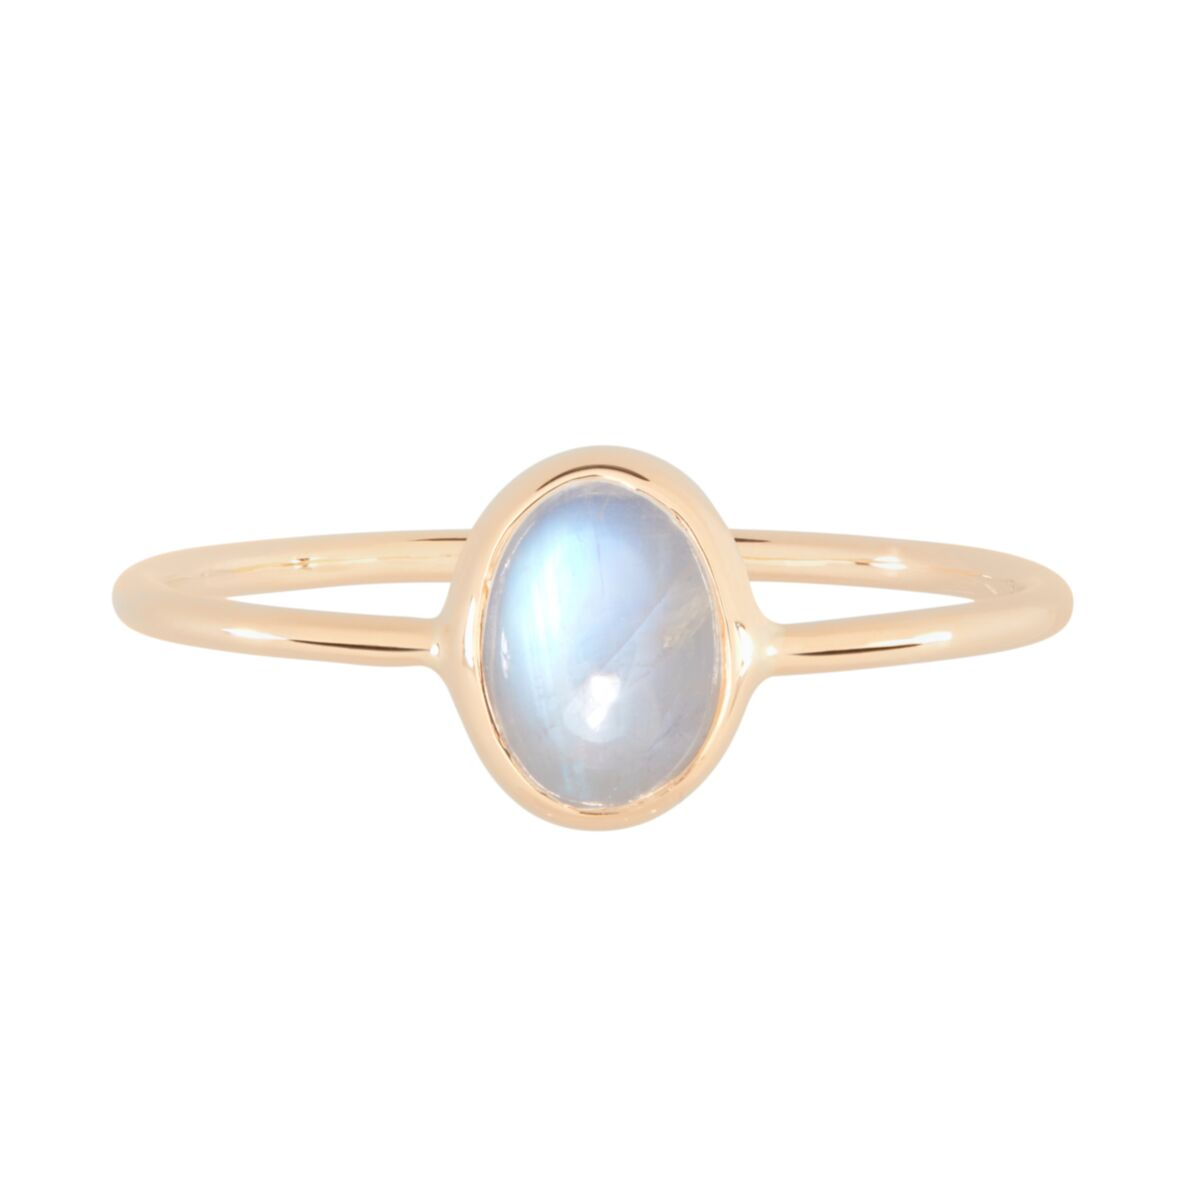 Oval Moonstone Ring image